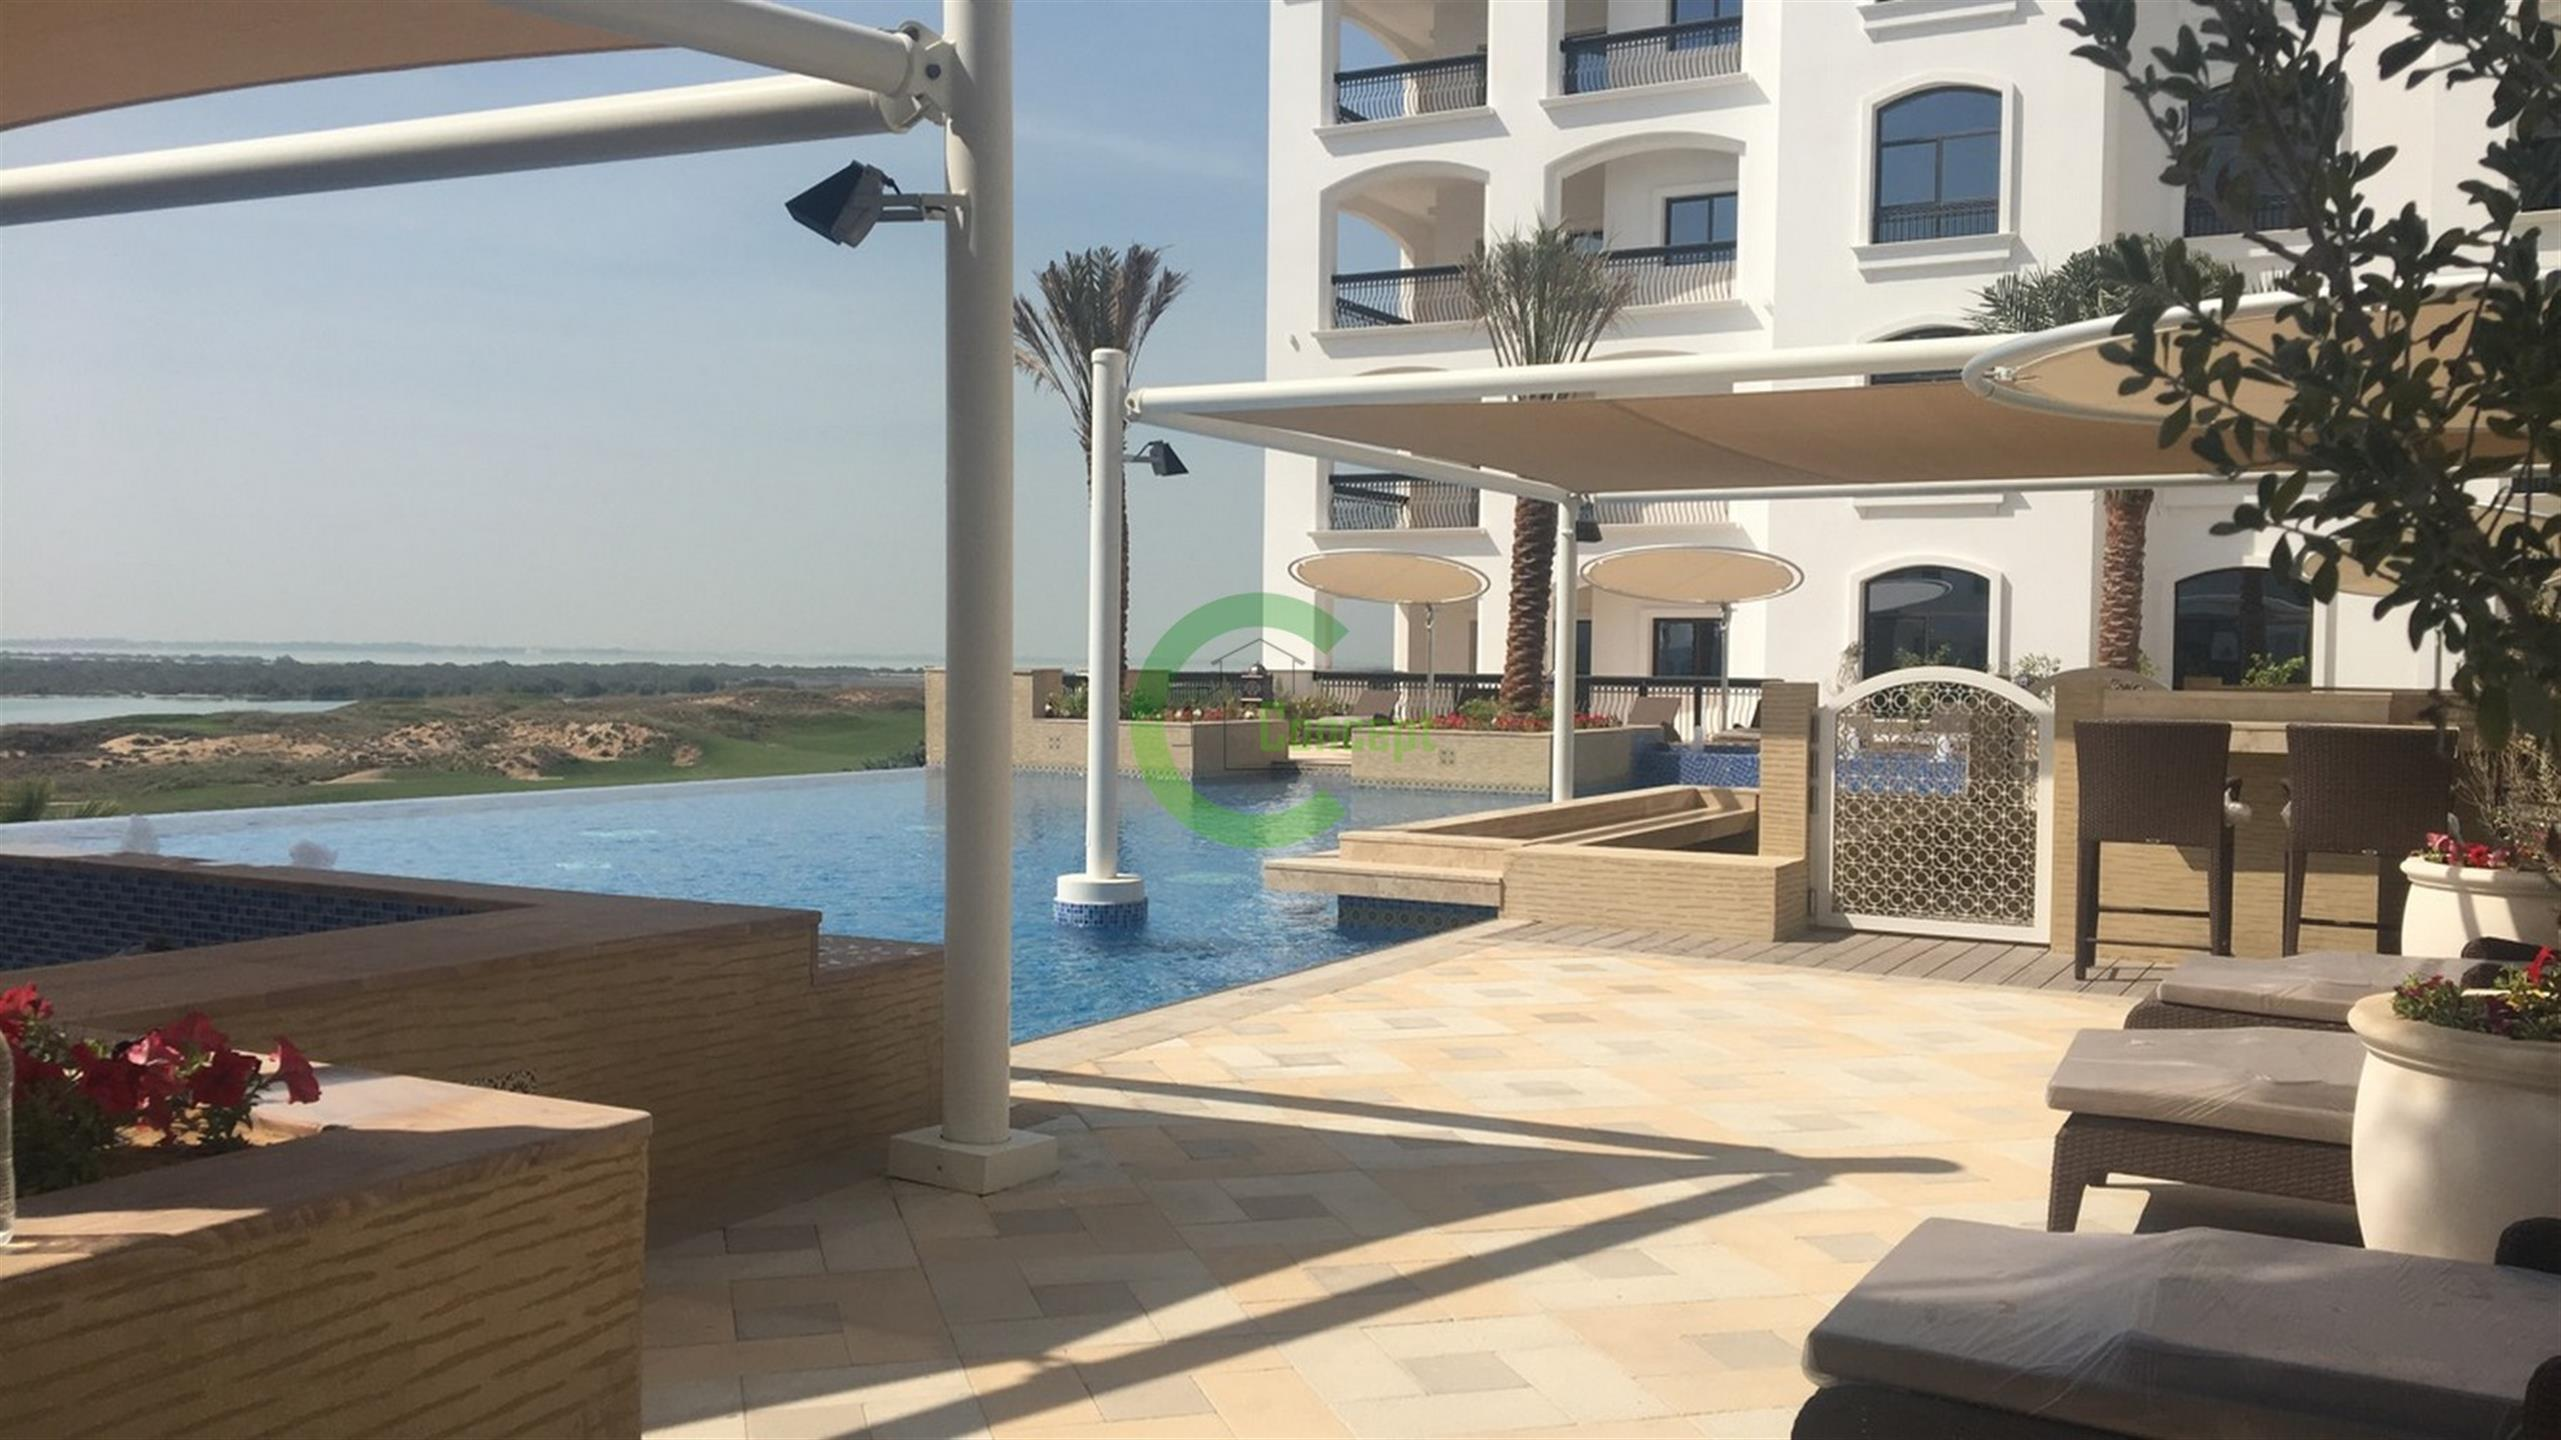 Luxurious 1br Apt. In Yas Island Available.